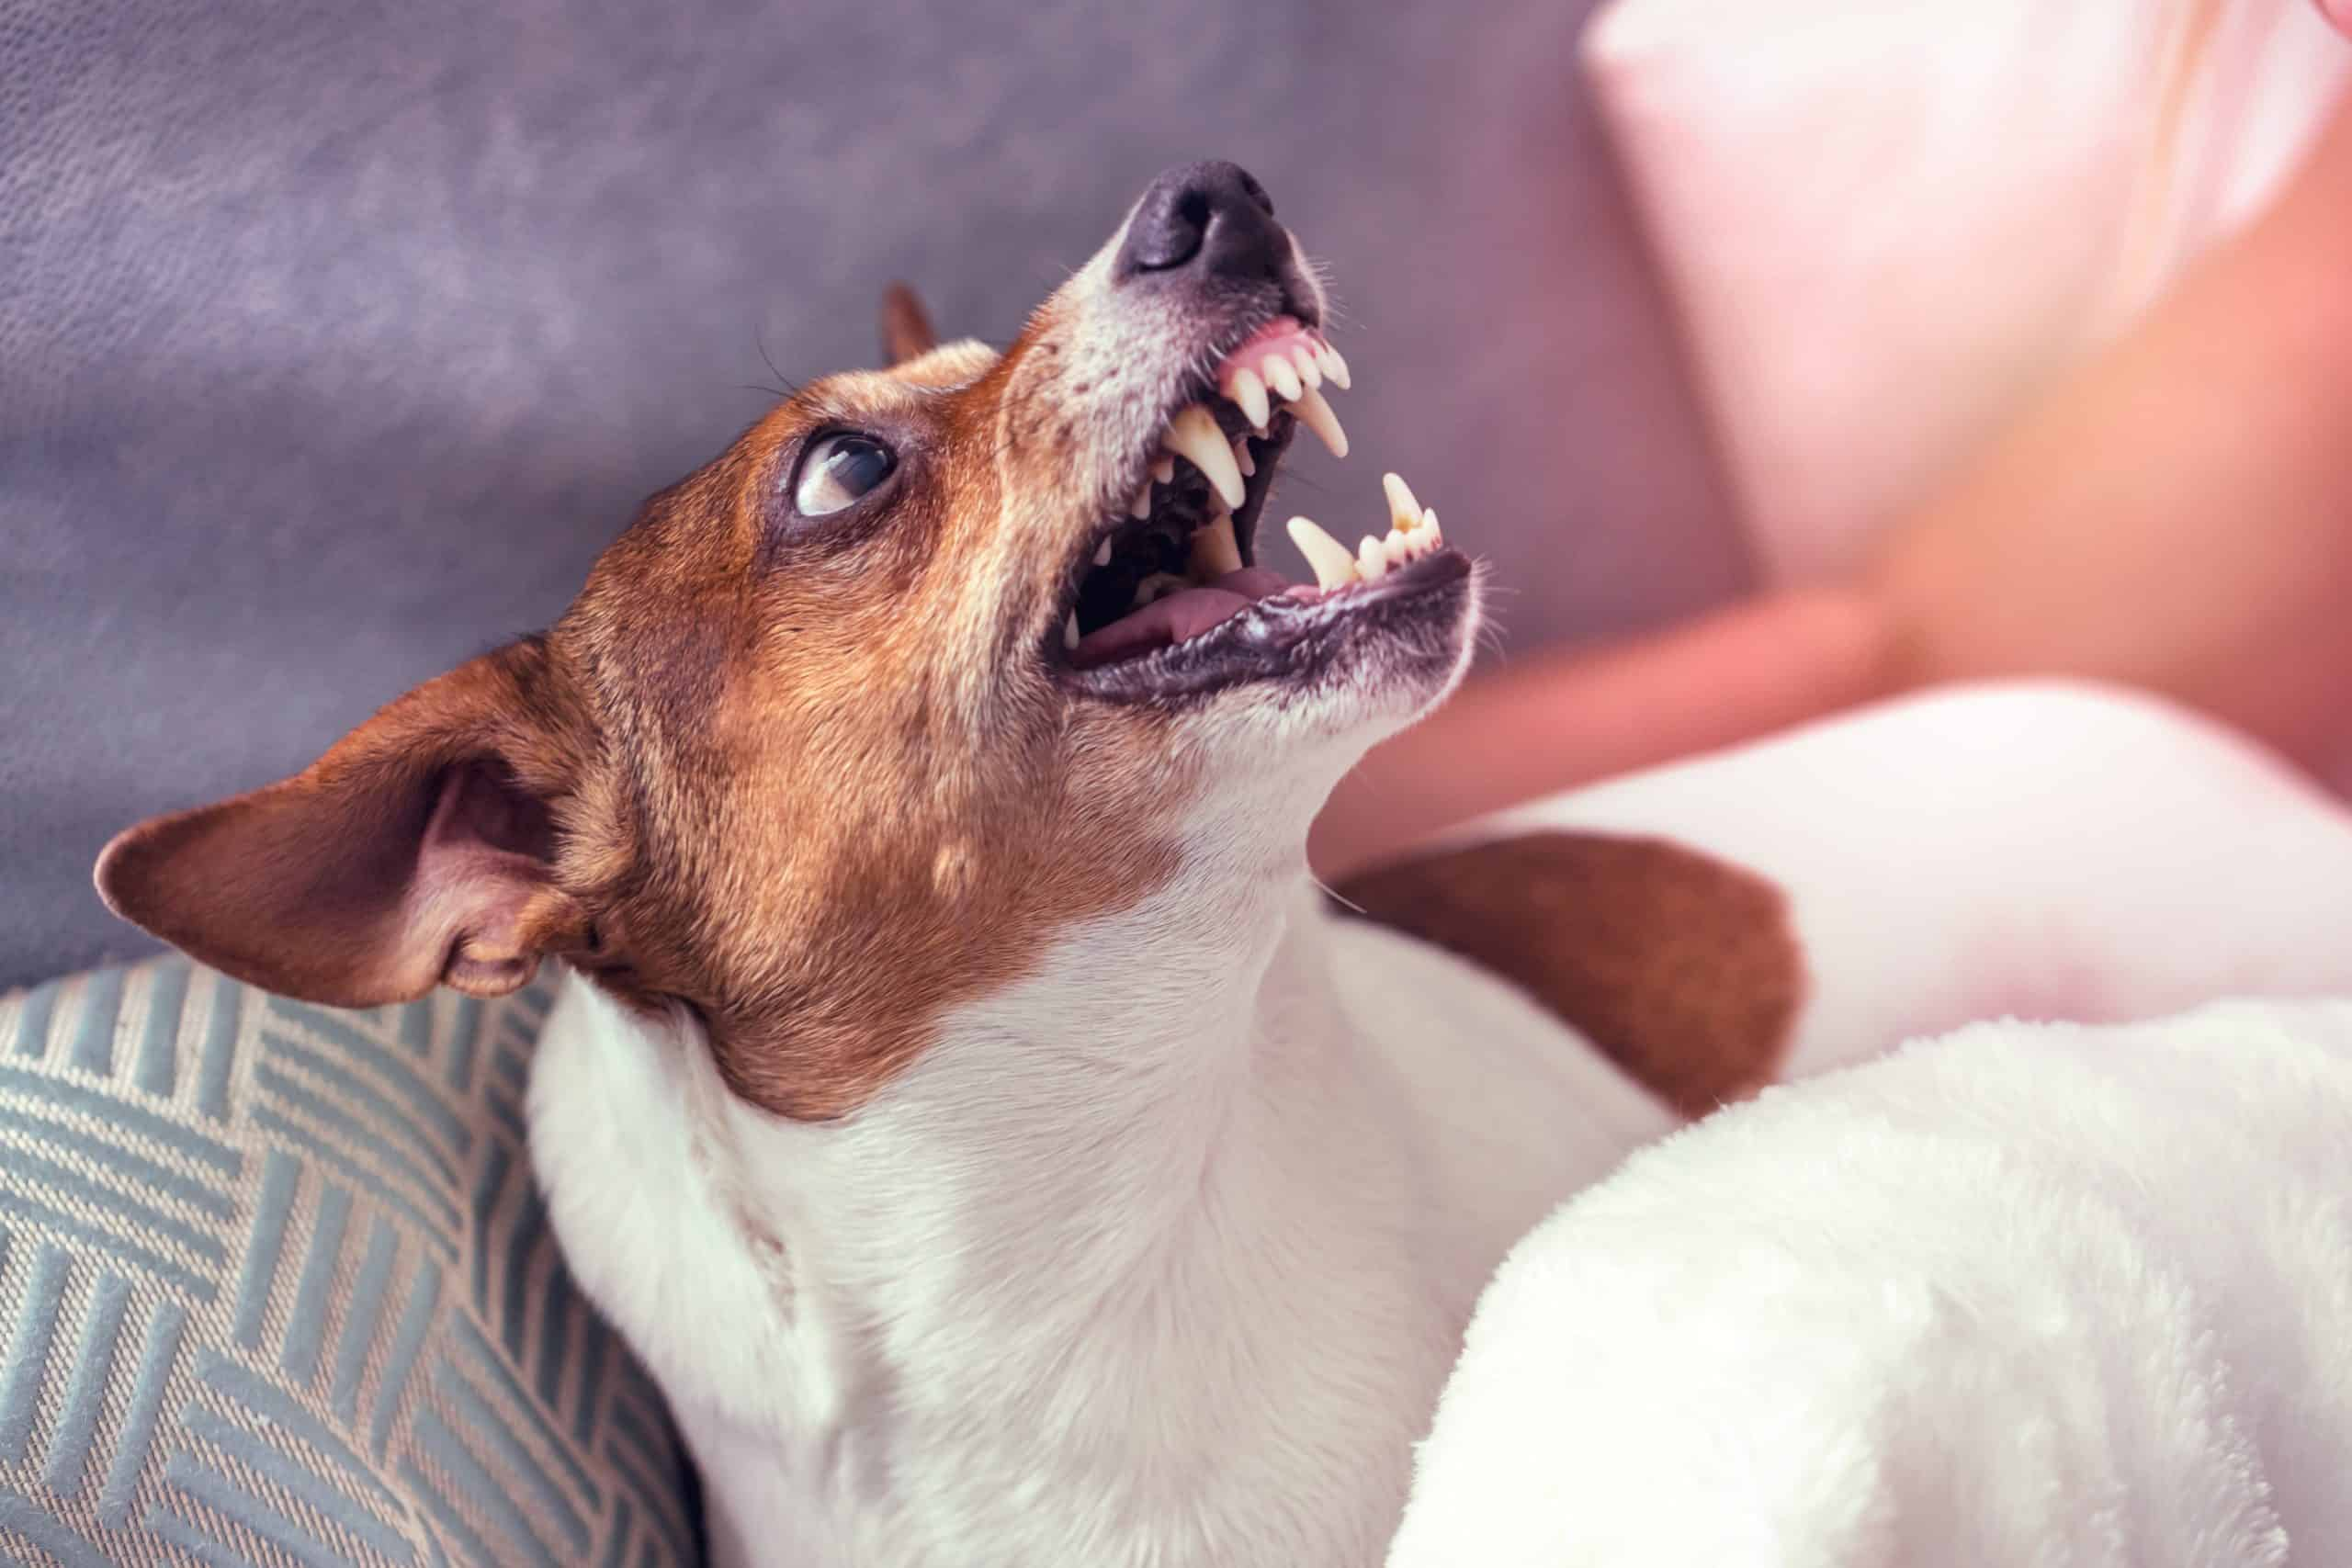 Aggressive dog reacts to owner. To calm an aggressive dog, start by determining what's causing the aggression so you can develop strategies to help your dog.